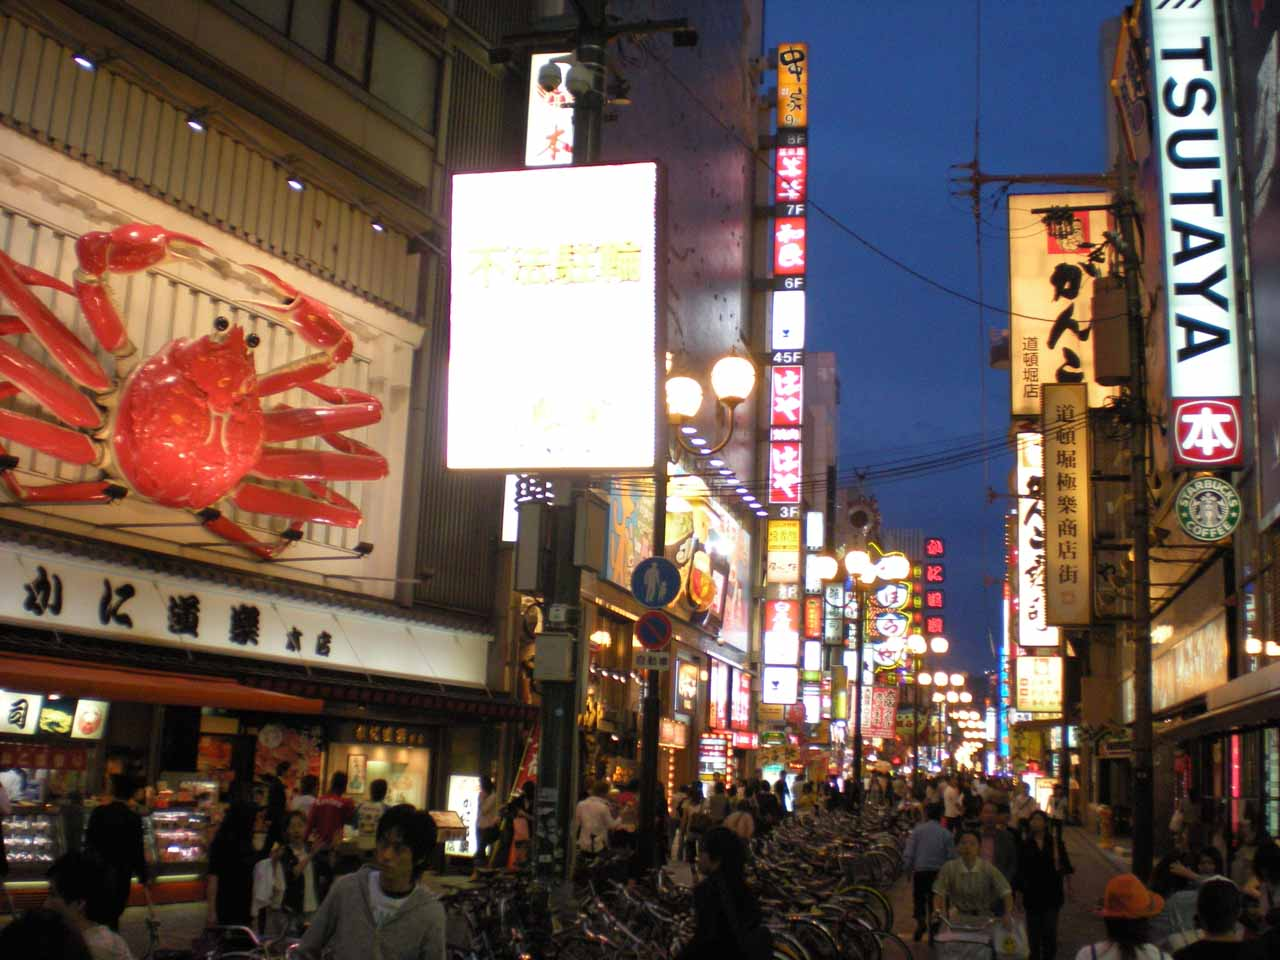 This was the happening Dotonbori District of Osaka, which was about 45 minutes east of Kobe and the Nunobiki Waterfalls